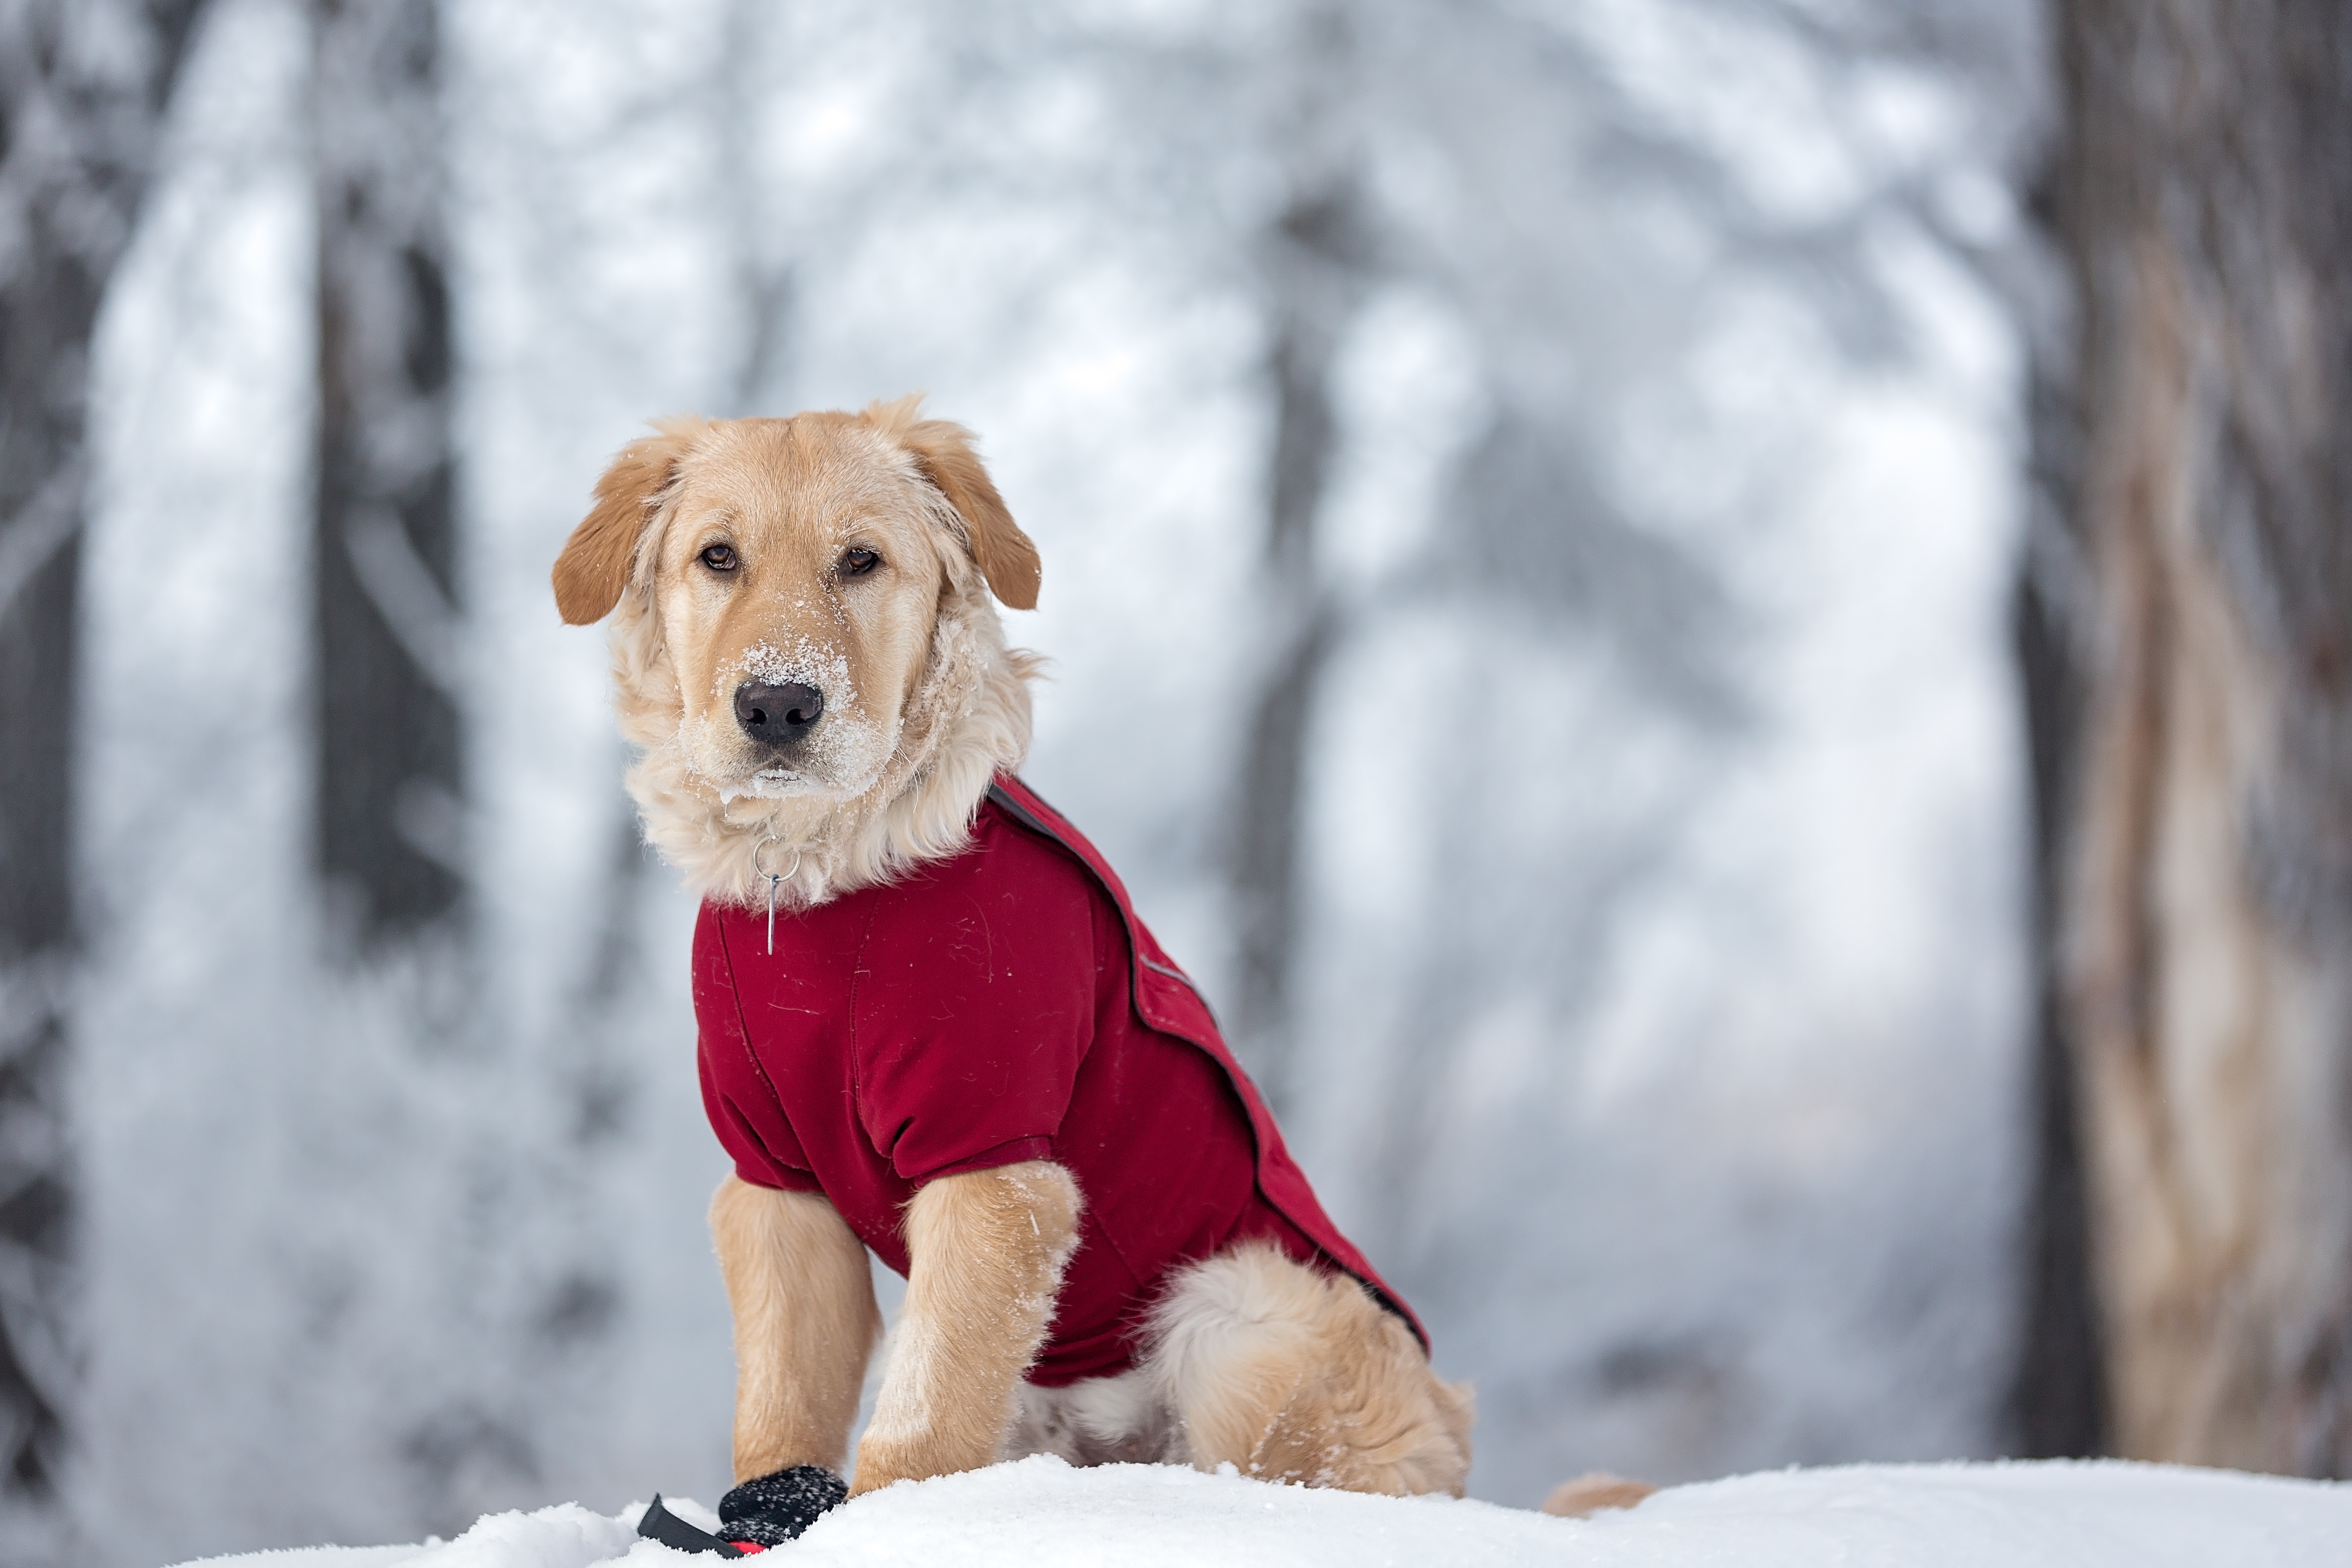 Animal-care experts suggest that if the weather outside is too cold for humans to withstand, they should bring their pets inside and let them out just long enough to do their bodily functions.